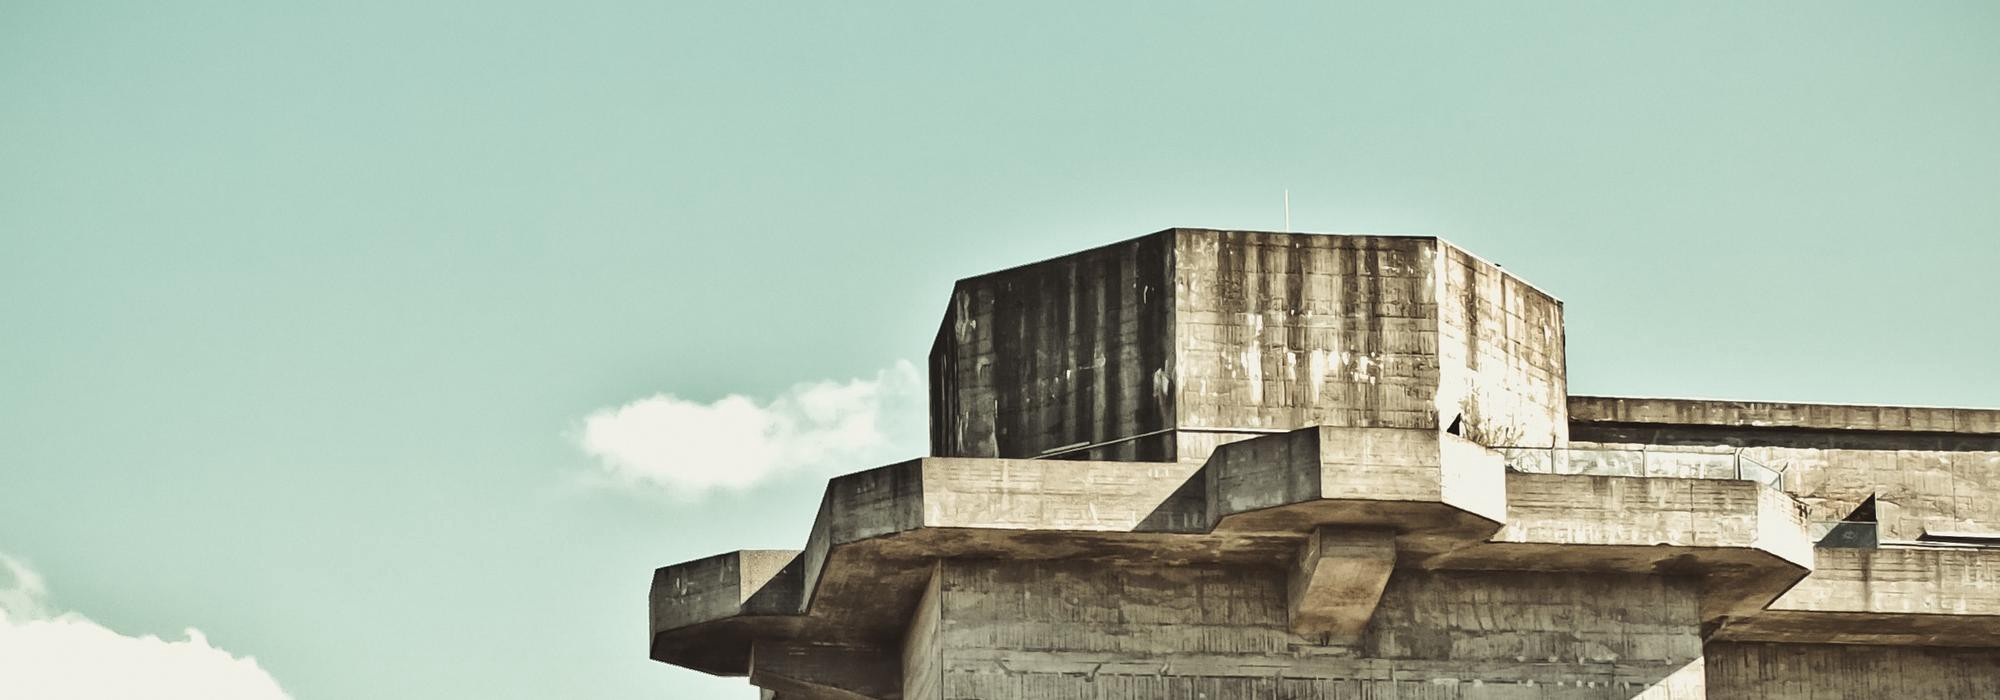 An old, desolate concrete fortress stands against a clear blue sky.